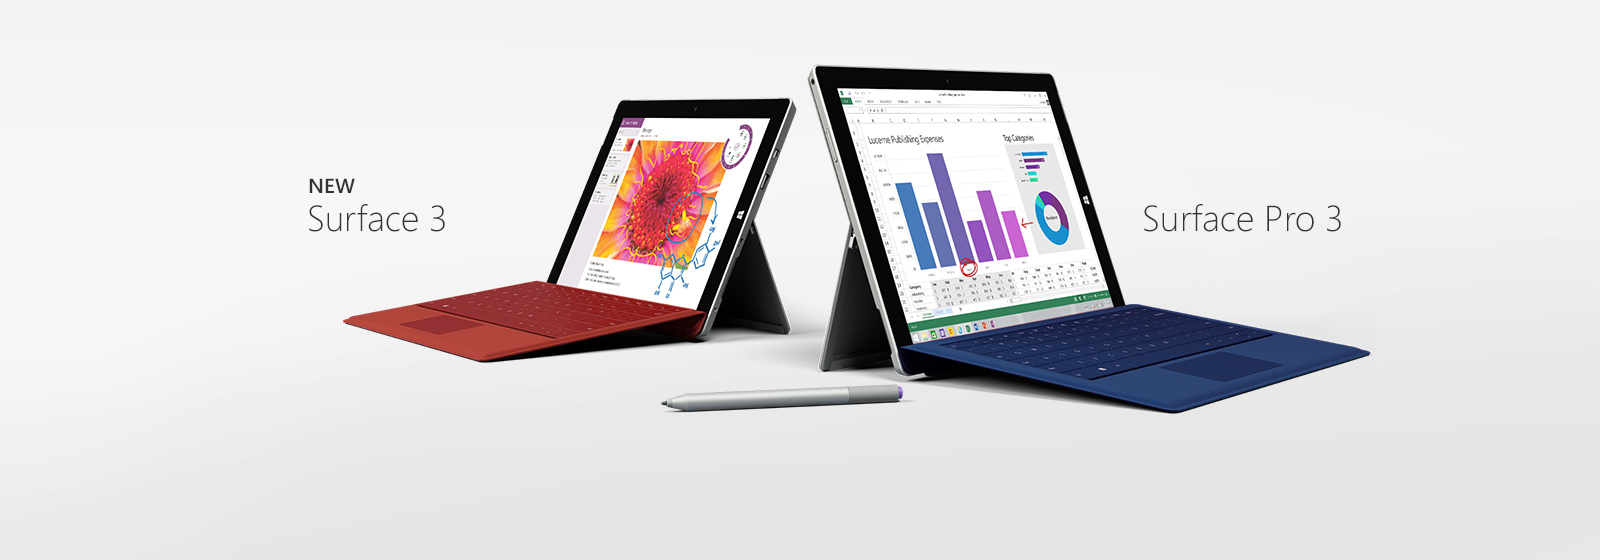 There's a Surface for everyone. Shop now.